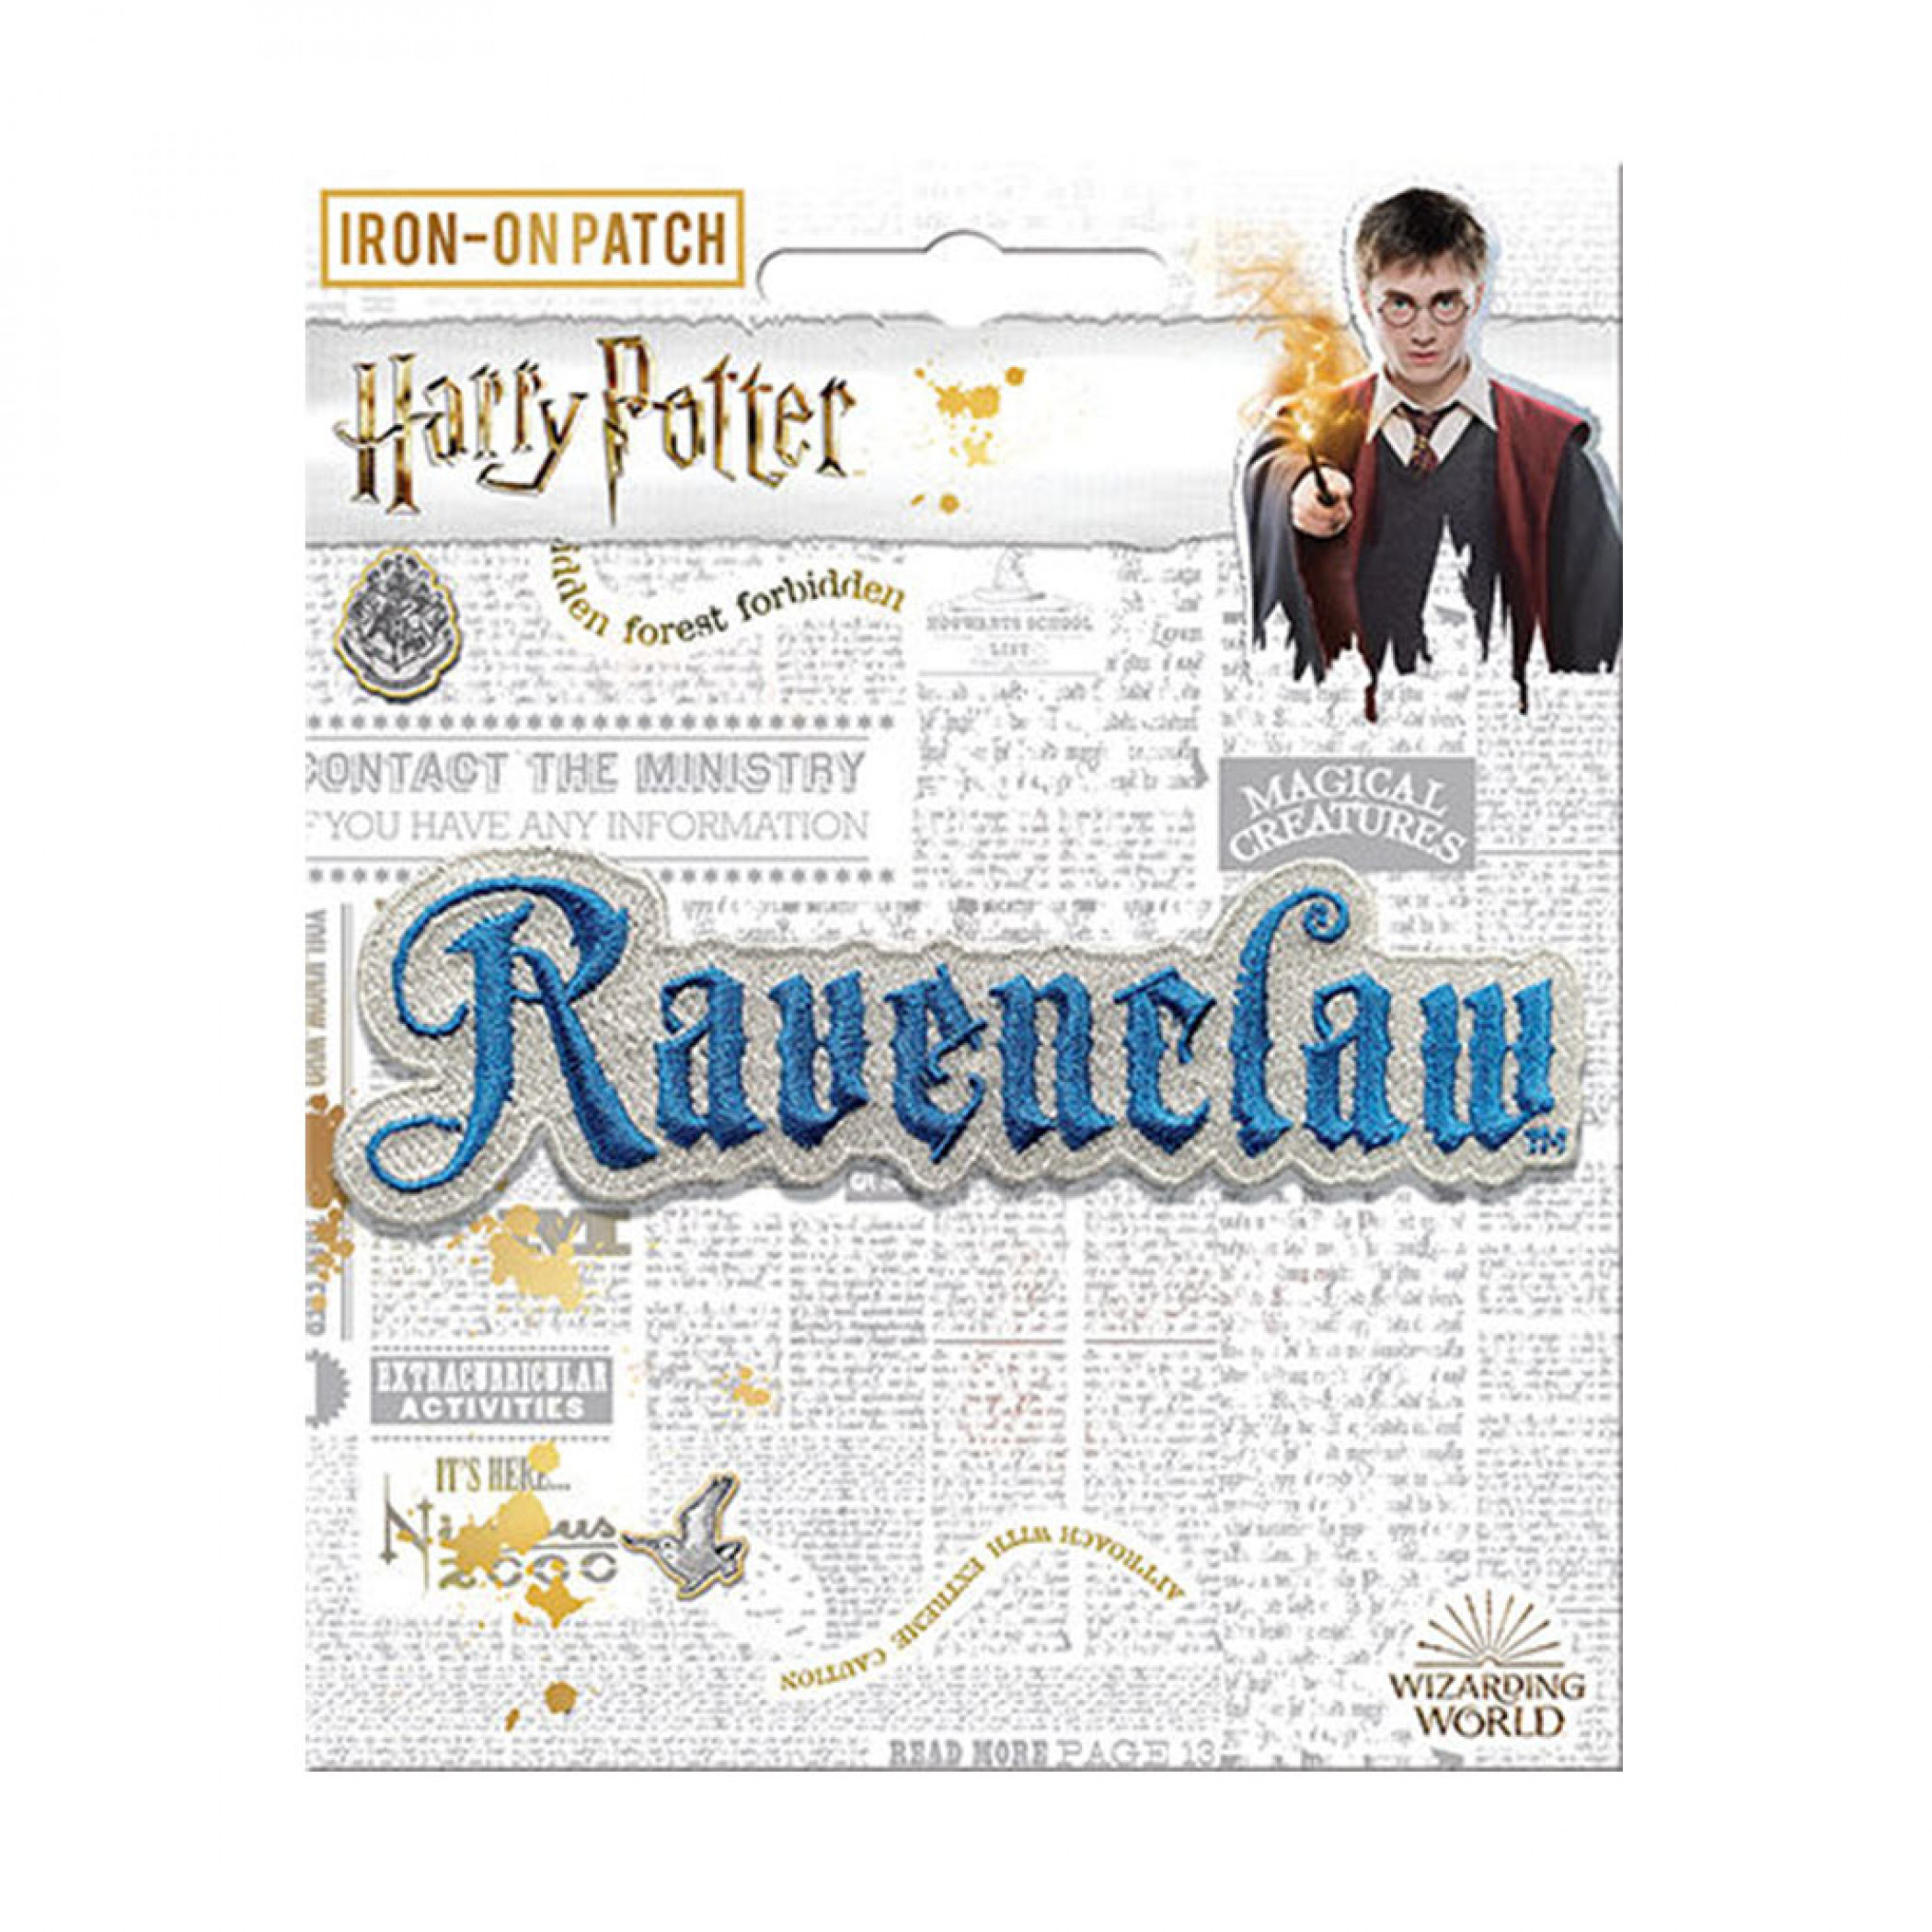 Harry Potter Ravenclaw Text Iron On Patch